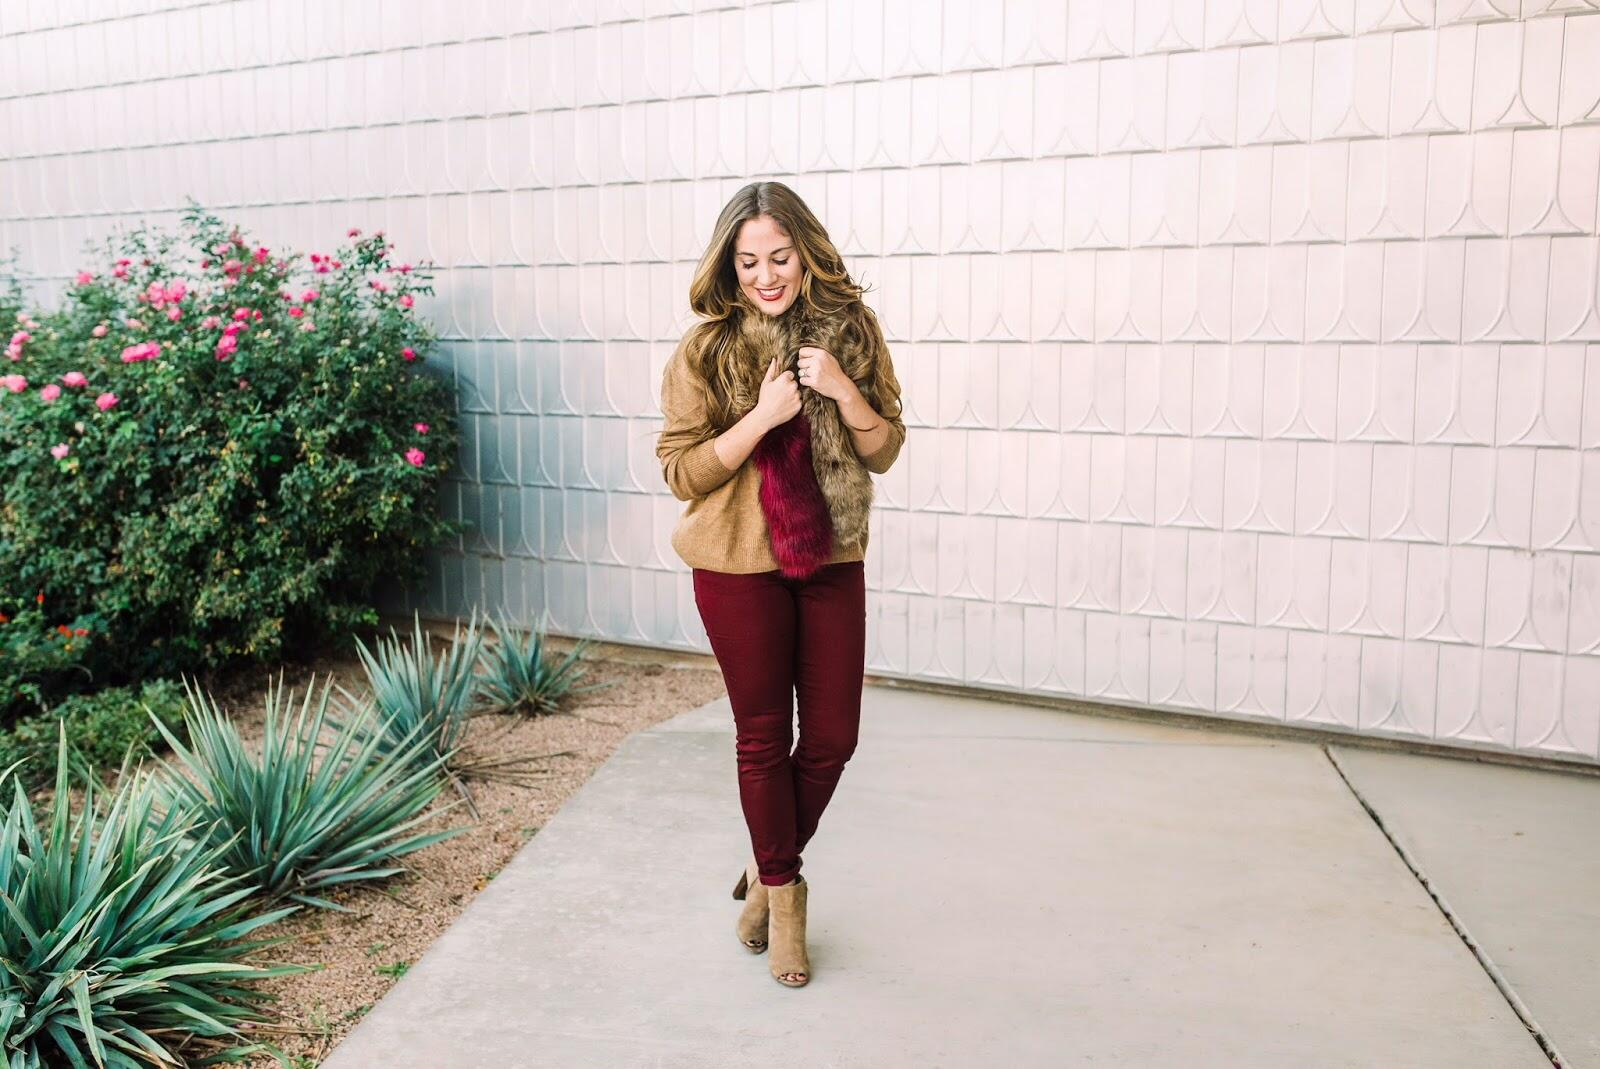 How to Wear Colored Jeans This Fall by East Memphis fashion blogger Walking in Memphis in High Heels